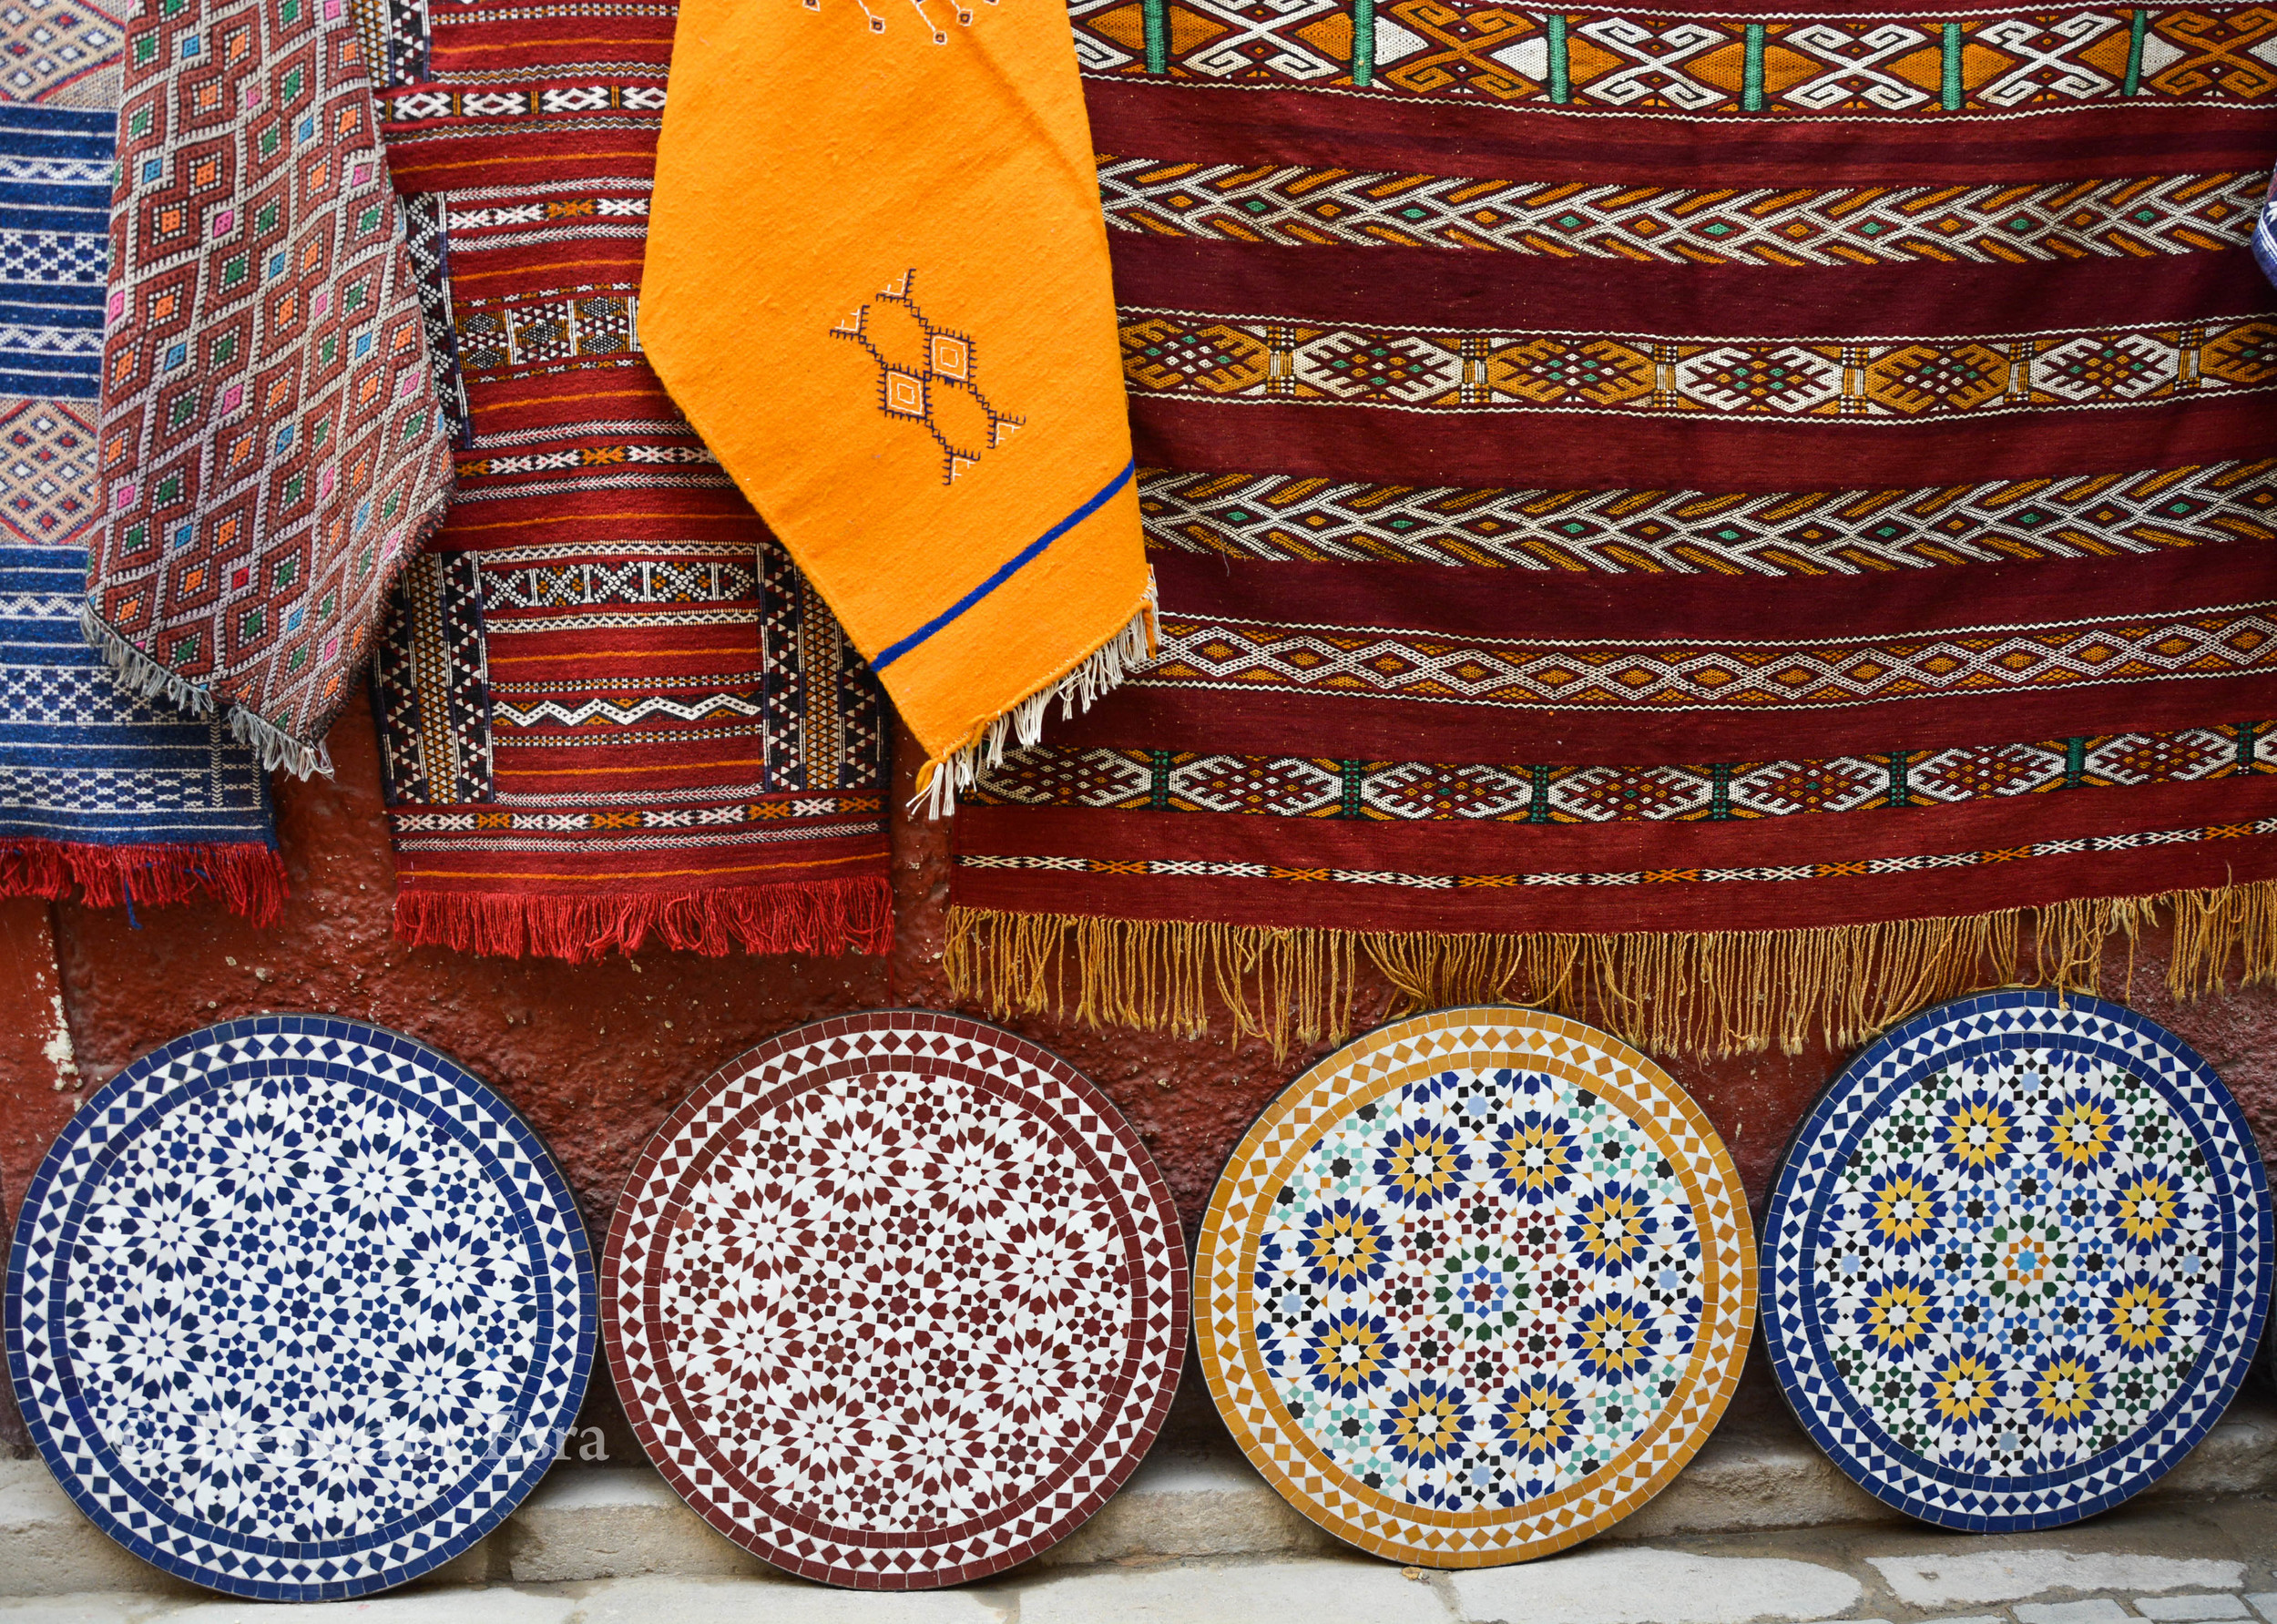 Shopping in Fez